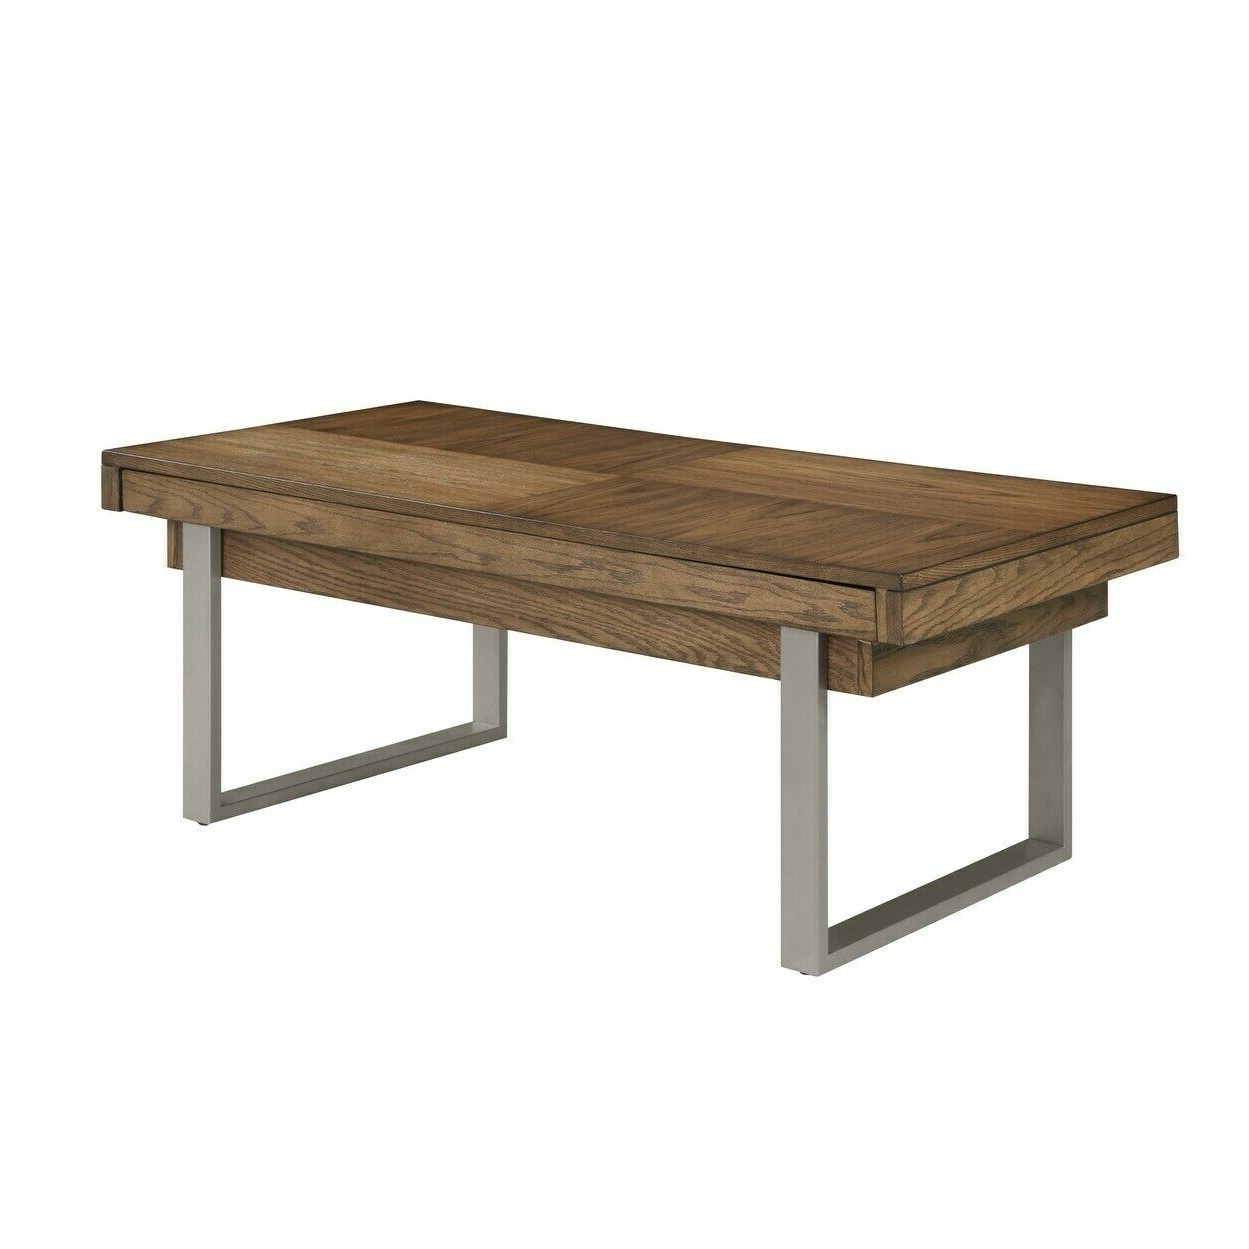 Most Recently Released Strick & Bolton Sylvia Geometric High Gloss Coffee Tables For Strick & Bolton Kramer Golden Oak Coffee Table Brown (View 8 of 20)